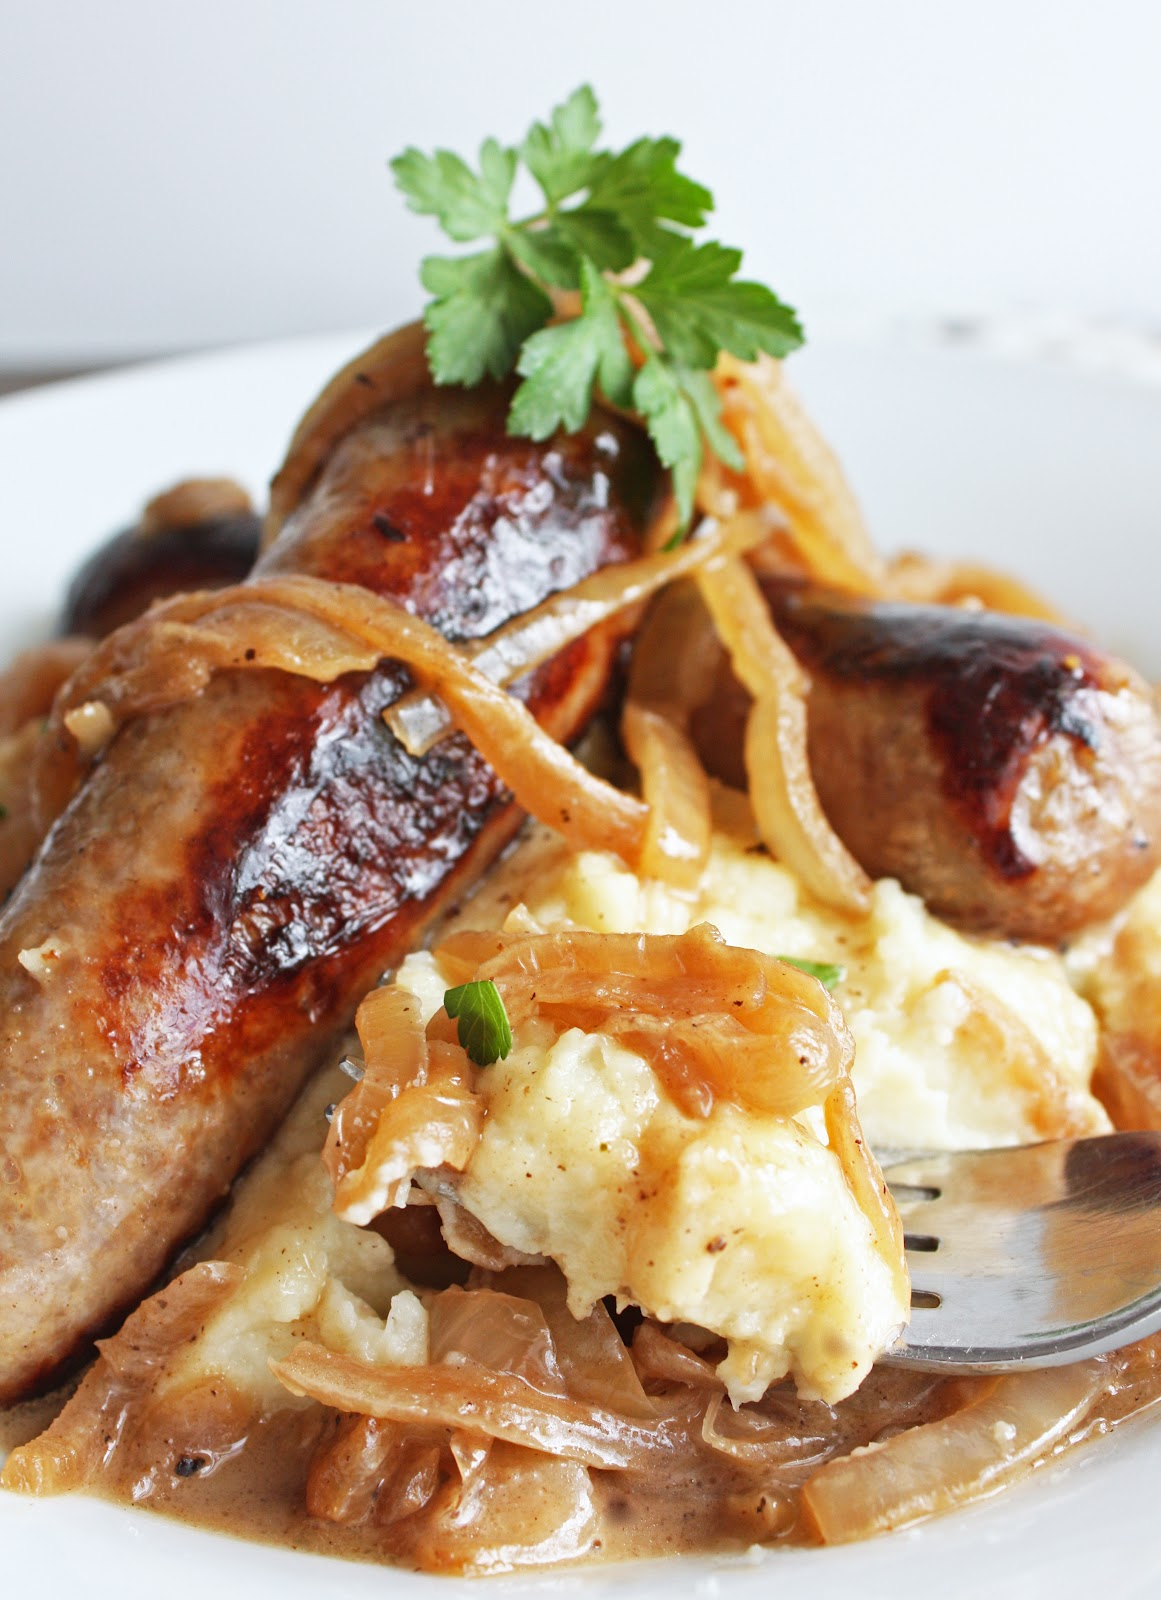 freeuse library Low carb gluten free. Mashed clipart bangers and mash.